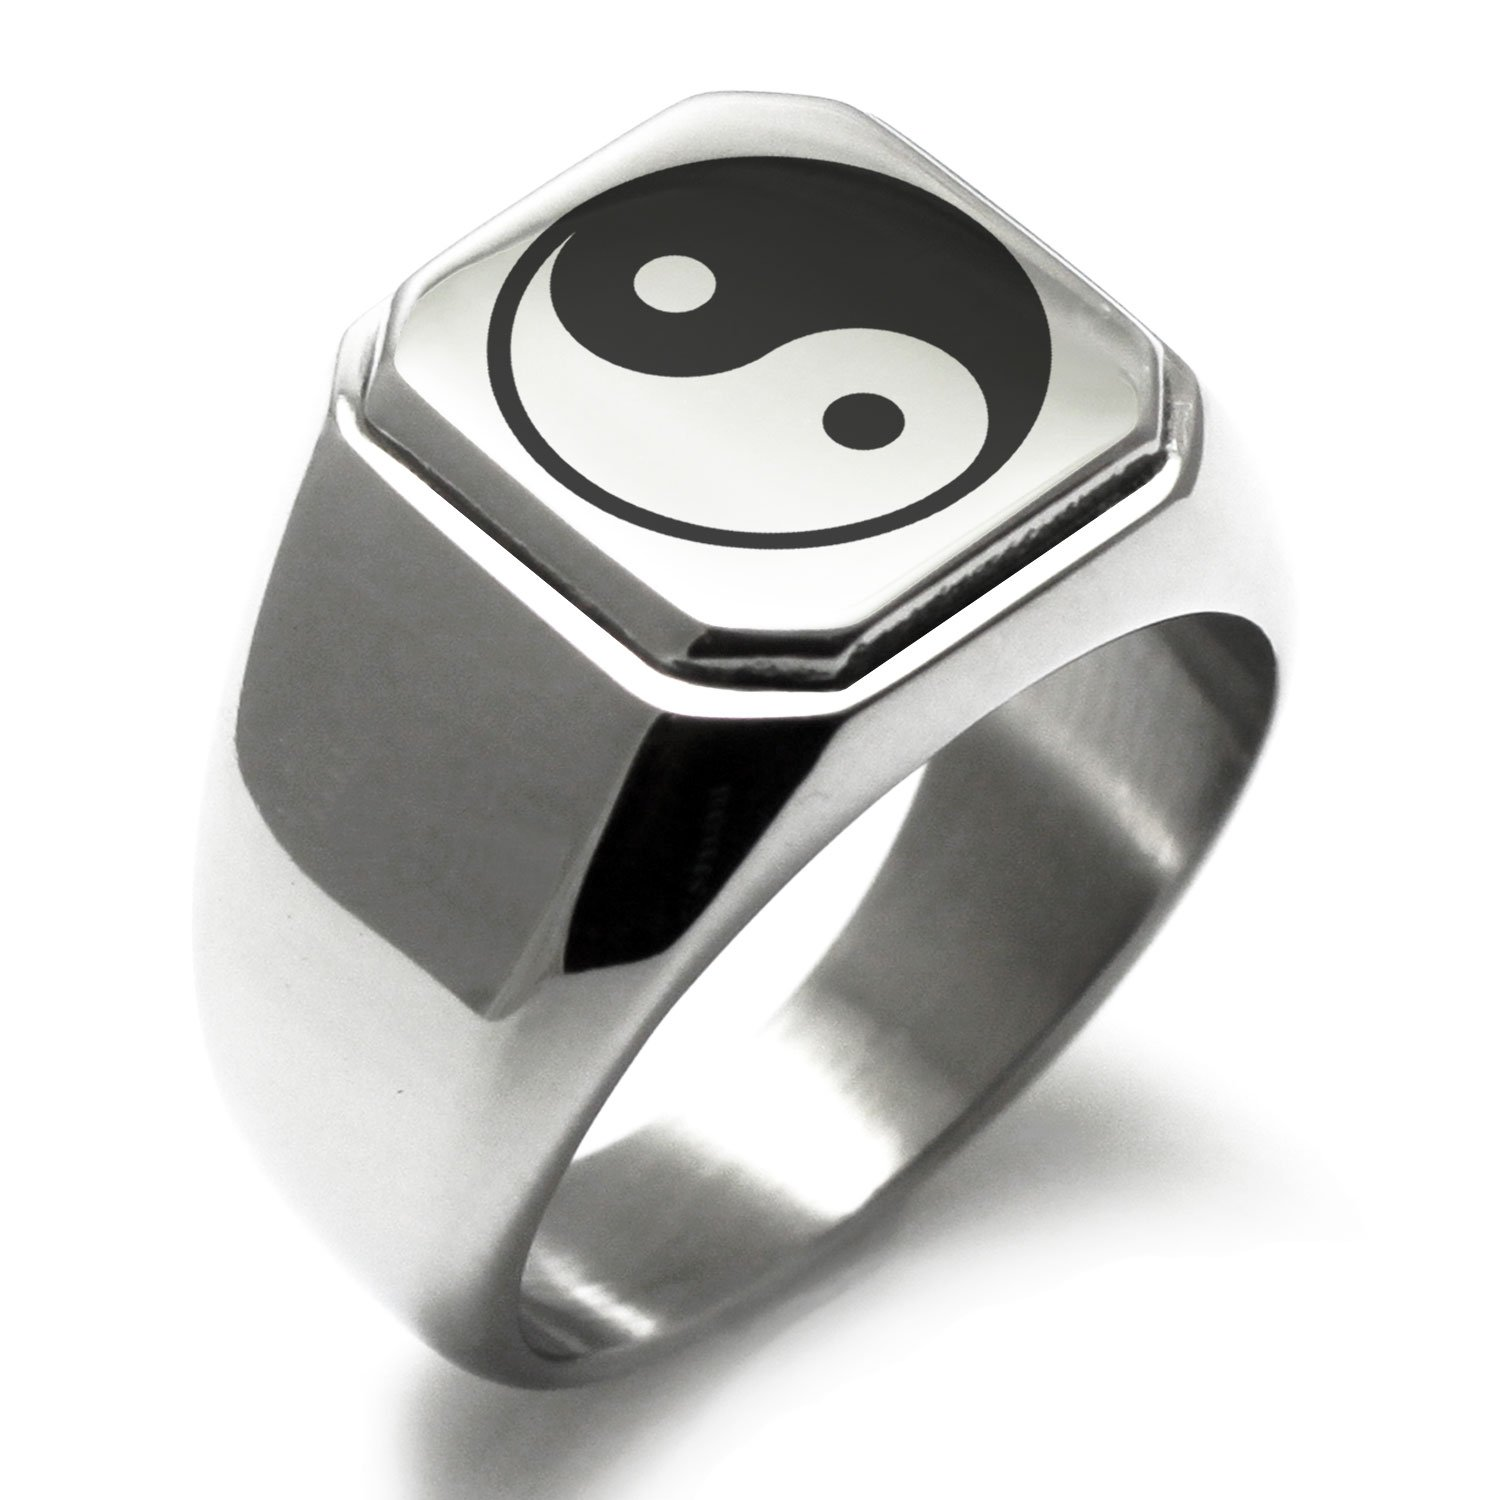 Stainless Steel Yin Yang Symbol Engraved Square Flat Top Biker Style Polished Ring, Size 9